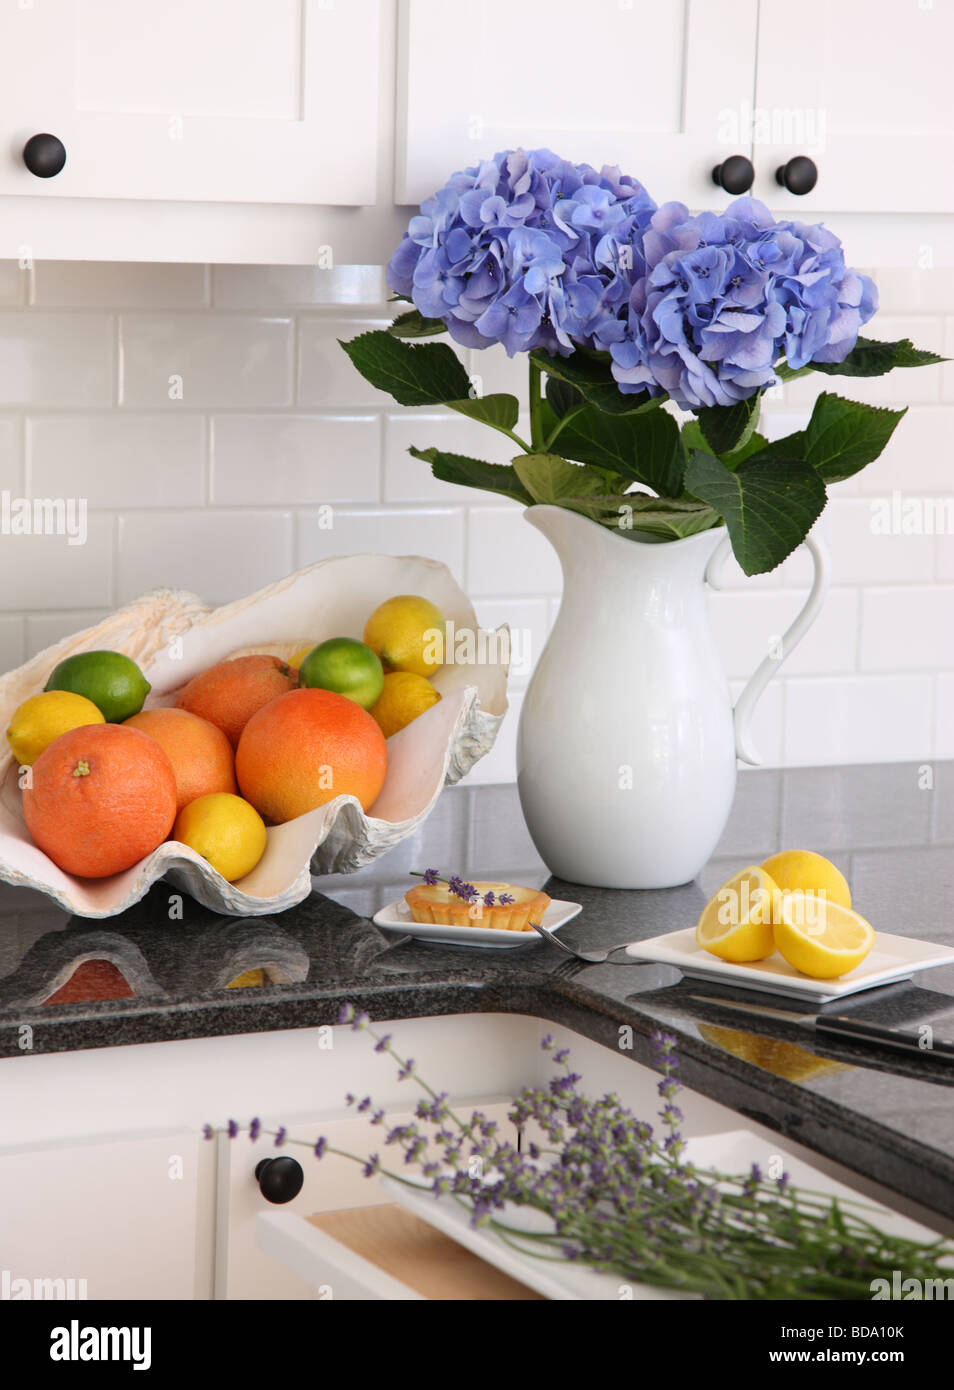 Kitchen still life with citrus fruit and flowers - Stock Image